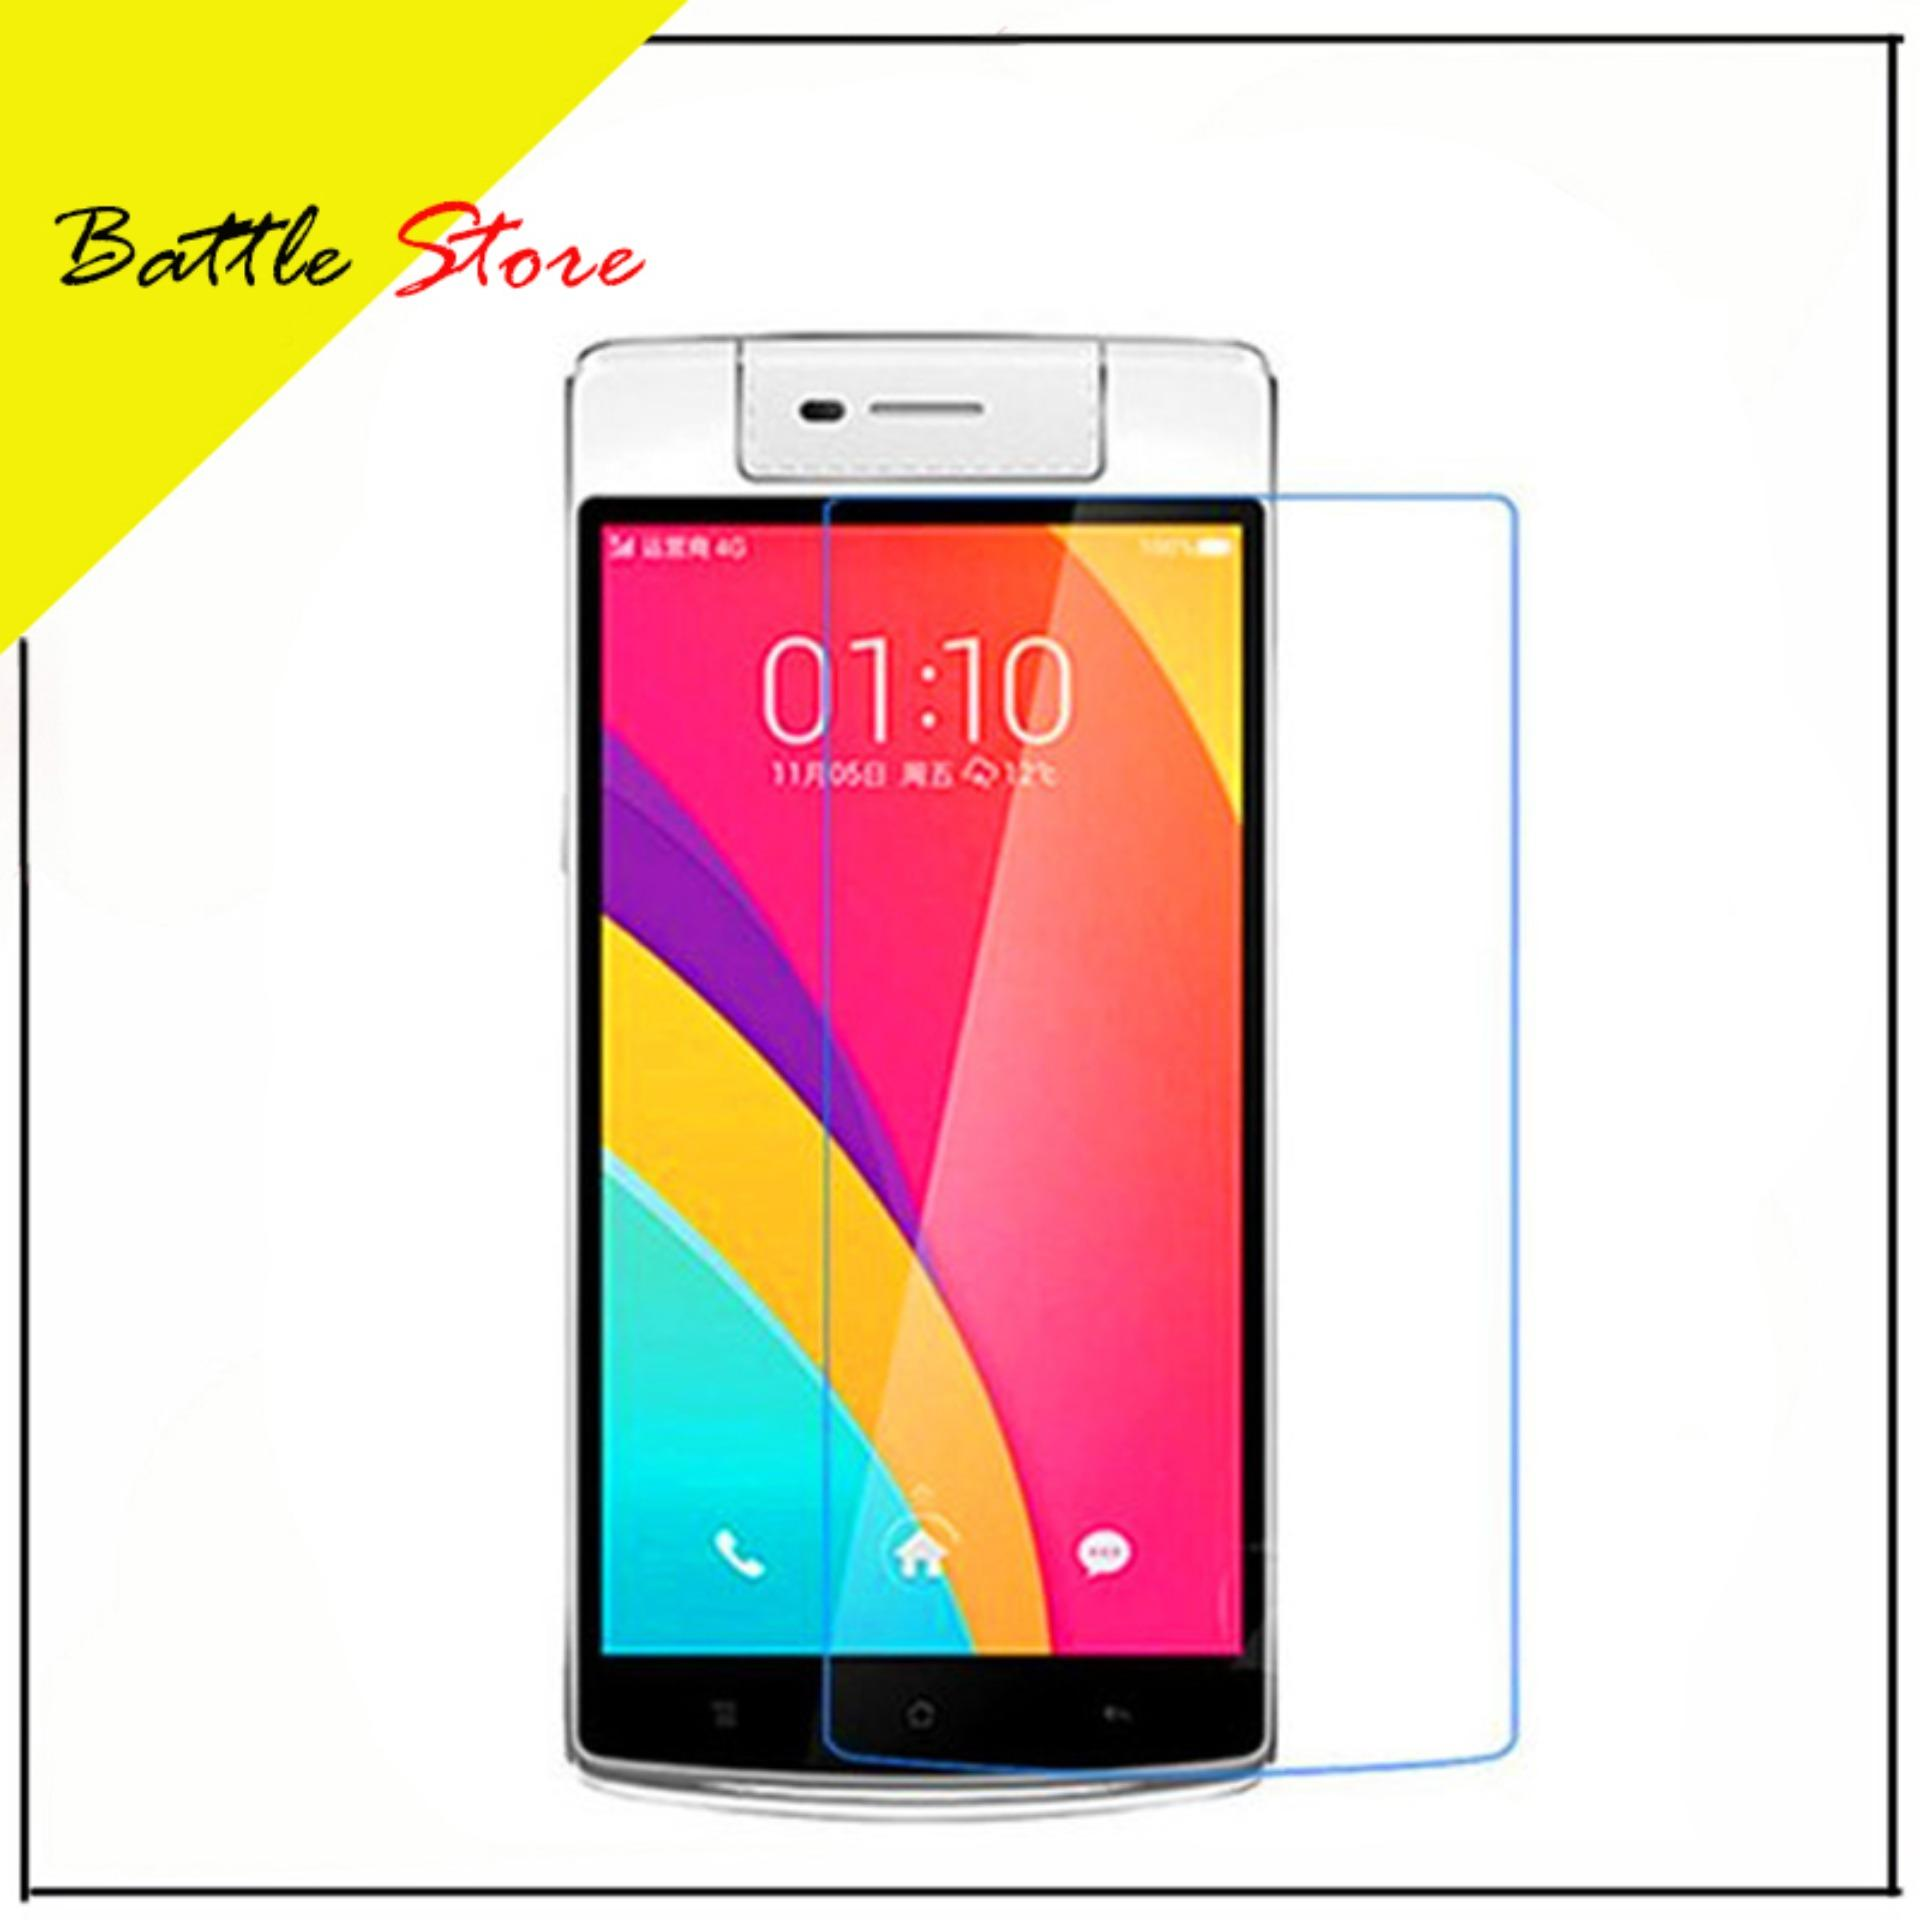 Oppo N3 Smile Screen Protector Tempered Glass / Anti Gores Kaca - White Clear